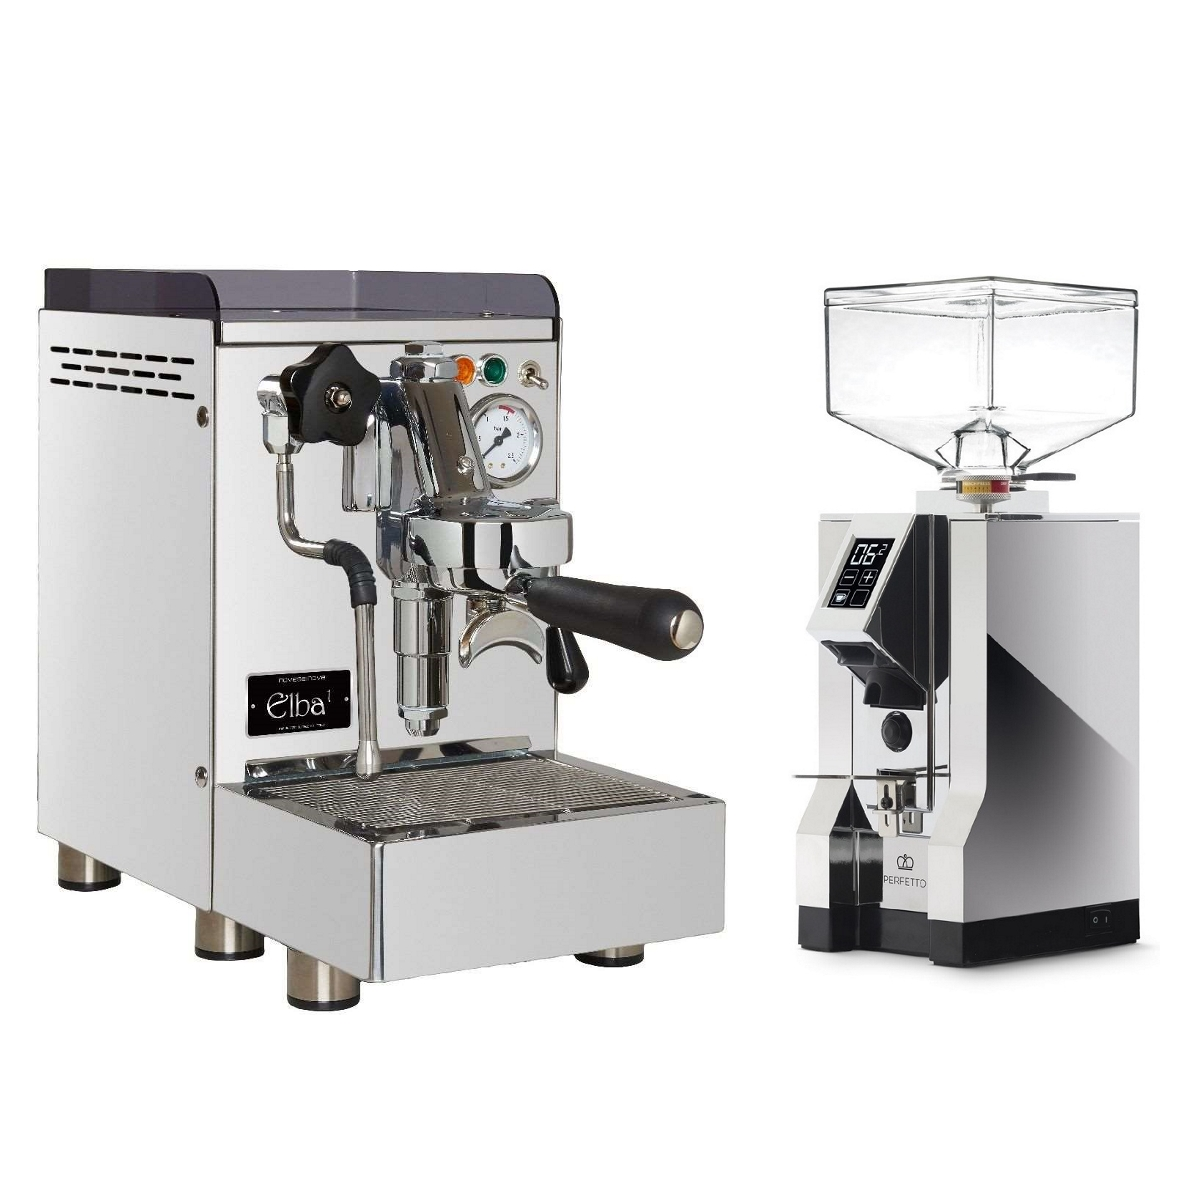 Coffee machine 969.coffee Elba1 + Coffee grinder Eureka Mignon Specialita' 16CR - Chrome